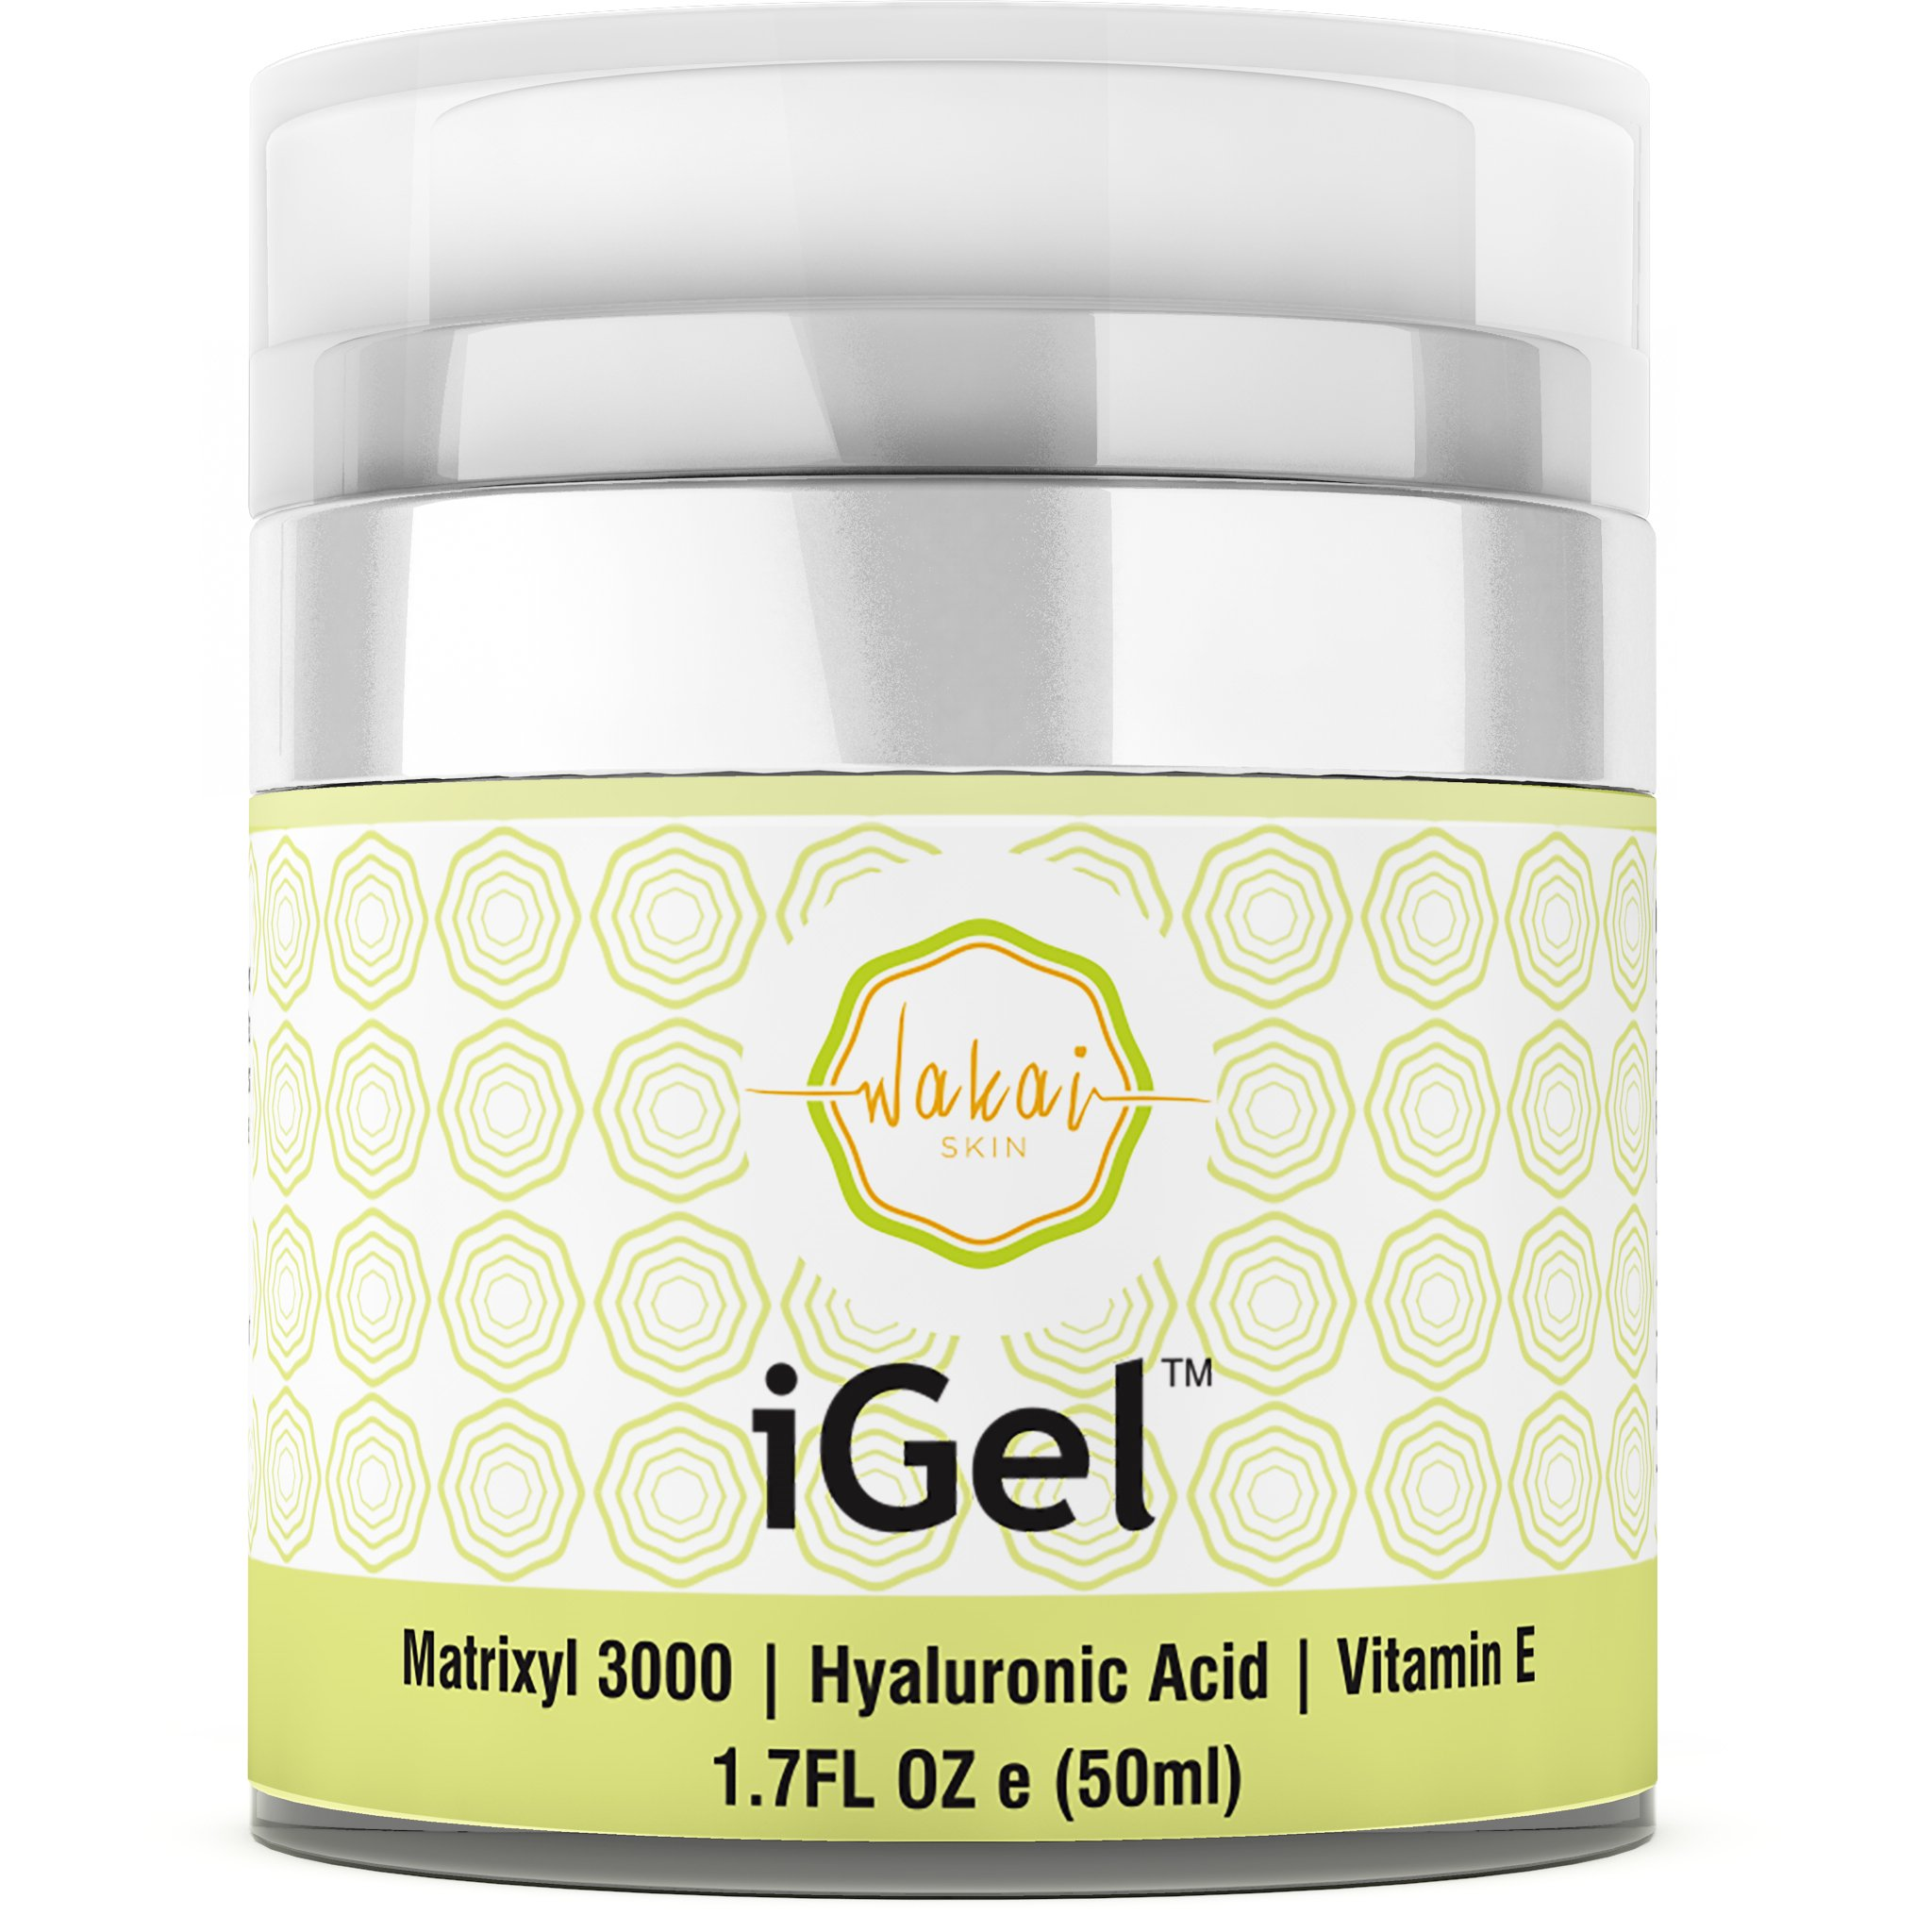 Wakai iGel Anti Aging Eye Cream - Lifting & Firming Under Eye Cream Combats Puffiness, Dark Circles & Wrinkles, With Organic Ingredients & Vitamins - Fast Absorbing & Light Formula